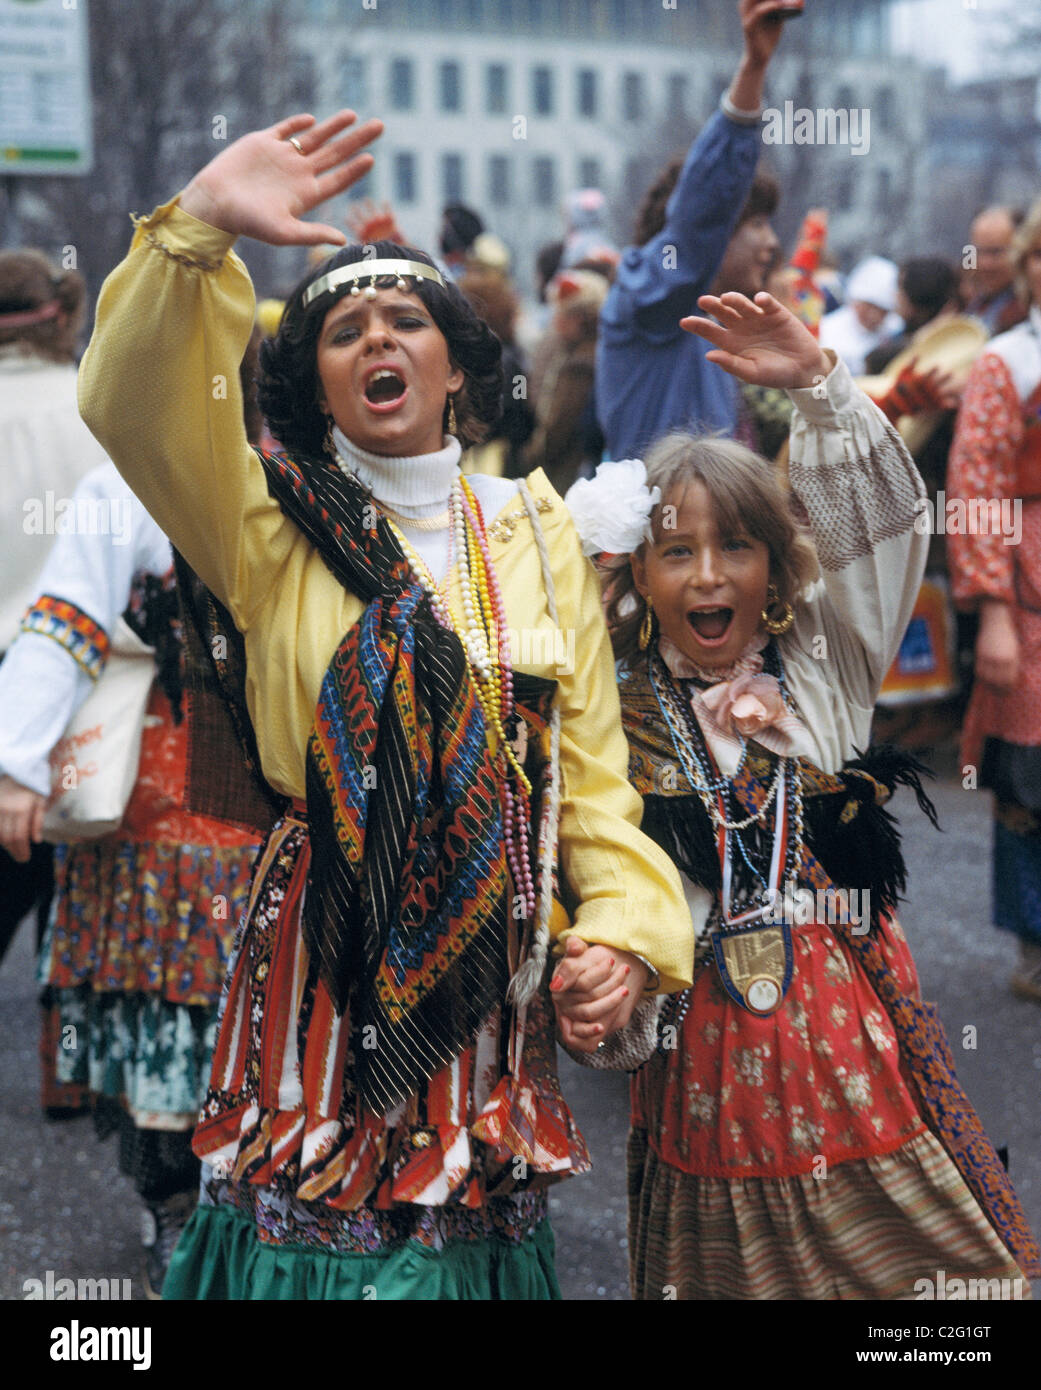 Eighties, carnival, Rhenish carnival, mother and daughter jubilating at the Shrove Monday procession, aged 30 to - Stock Image